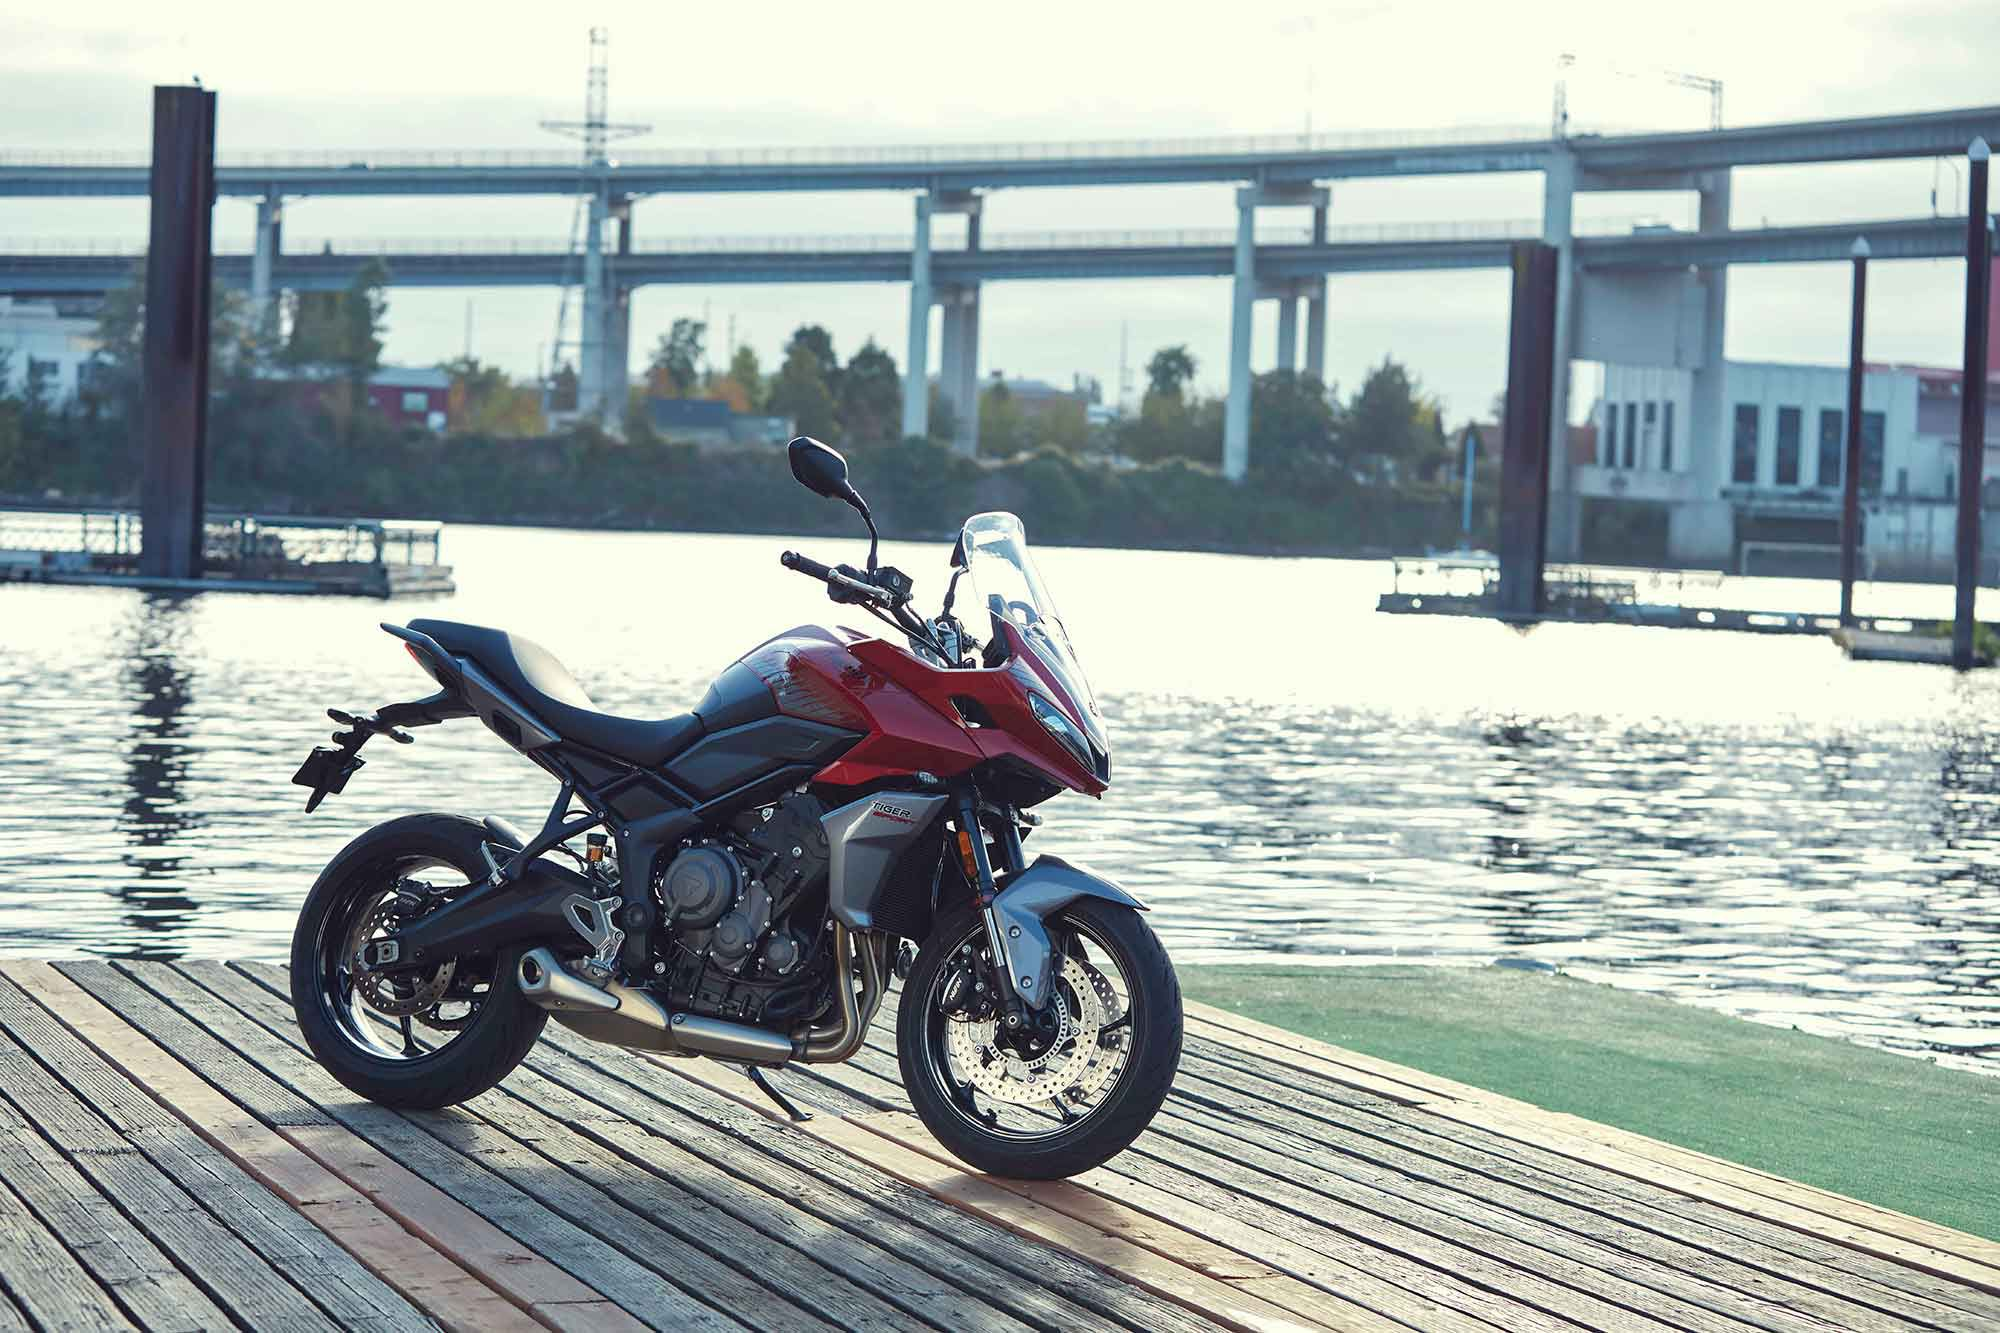 The 2022 Triumph Tiger Sport 660 rolls on 17-inch five-spoke cast aluminum wheels shod with Michelin Road 5 tires.